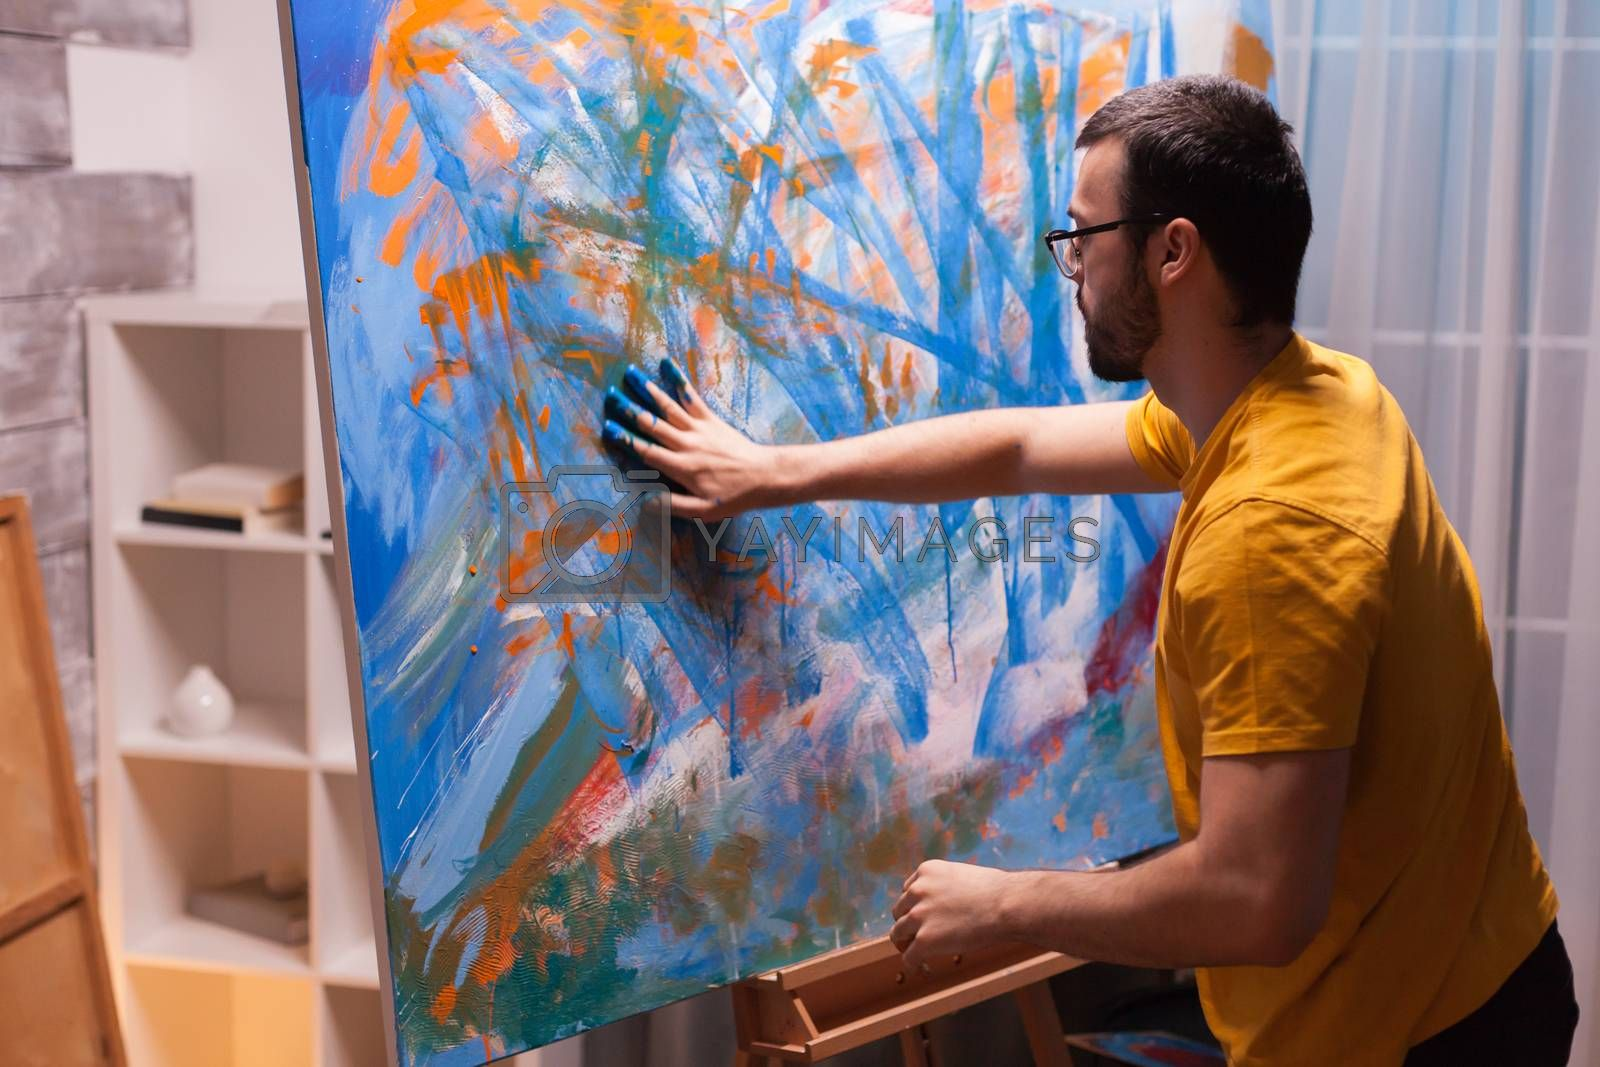 Successful artist in studio painting with hands on canvas. Modern artwork paint on canvas, creative, contemporary and successful fine art artist drawing masterpiece